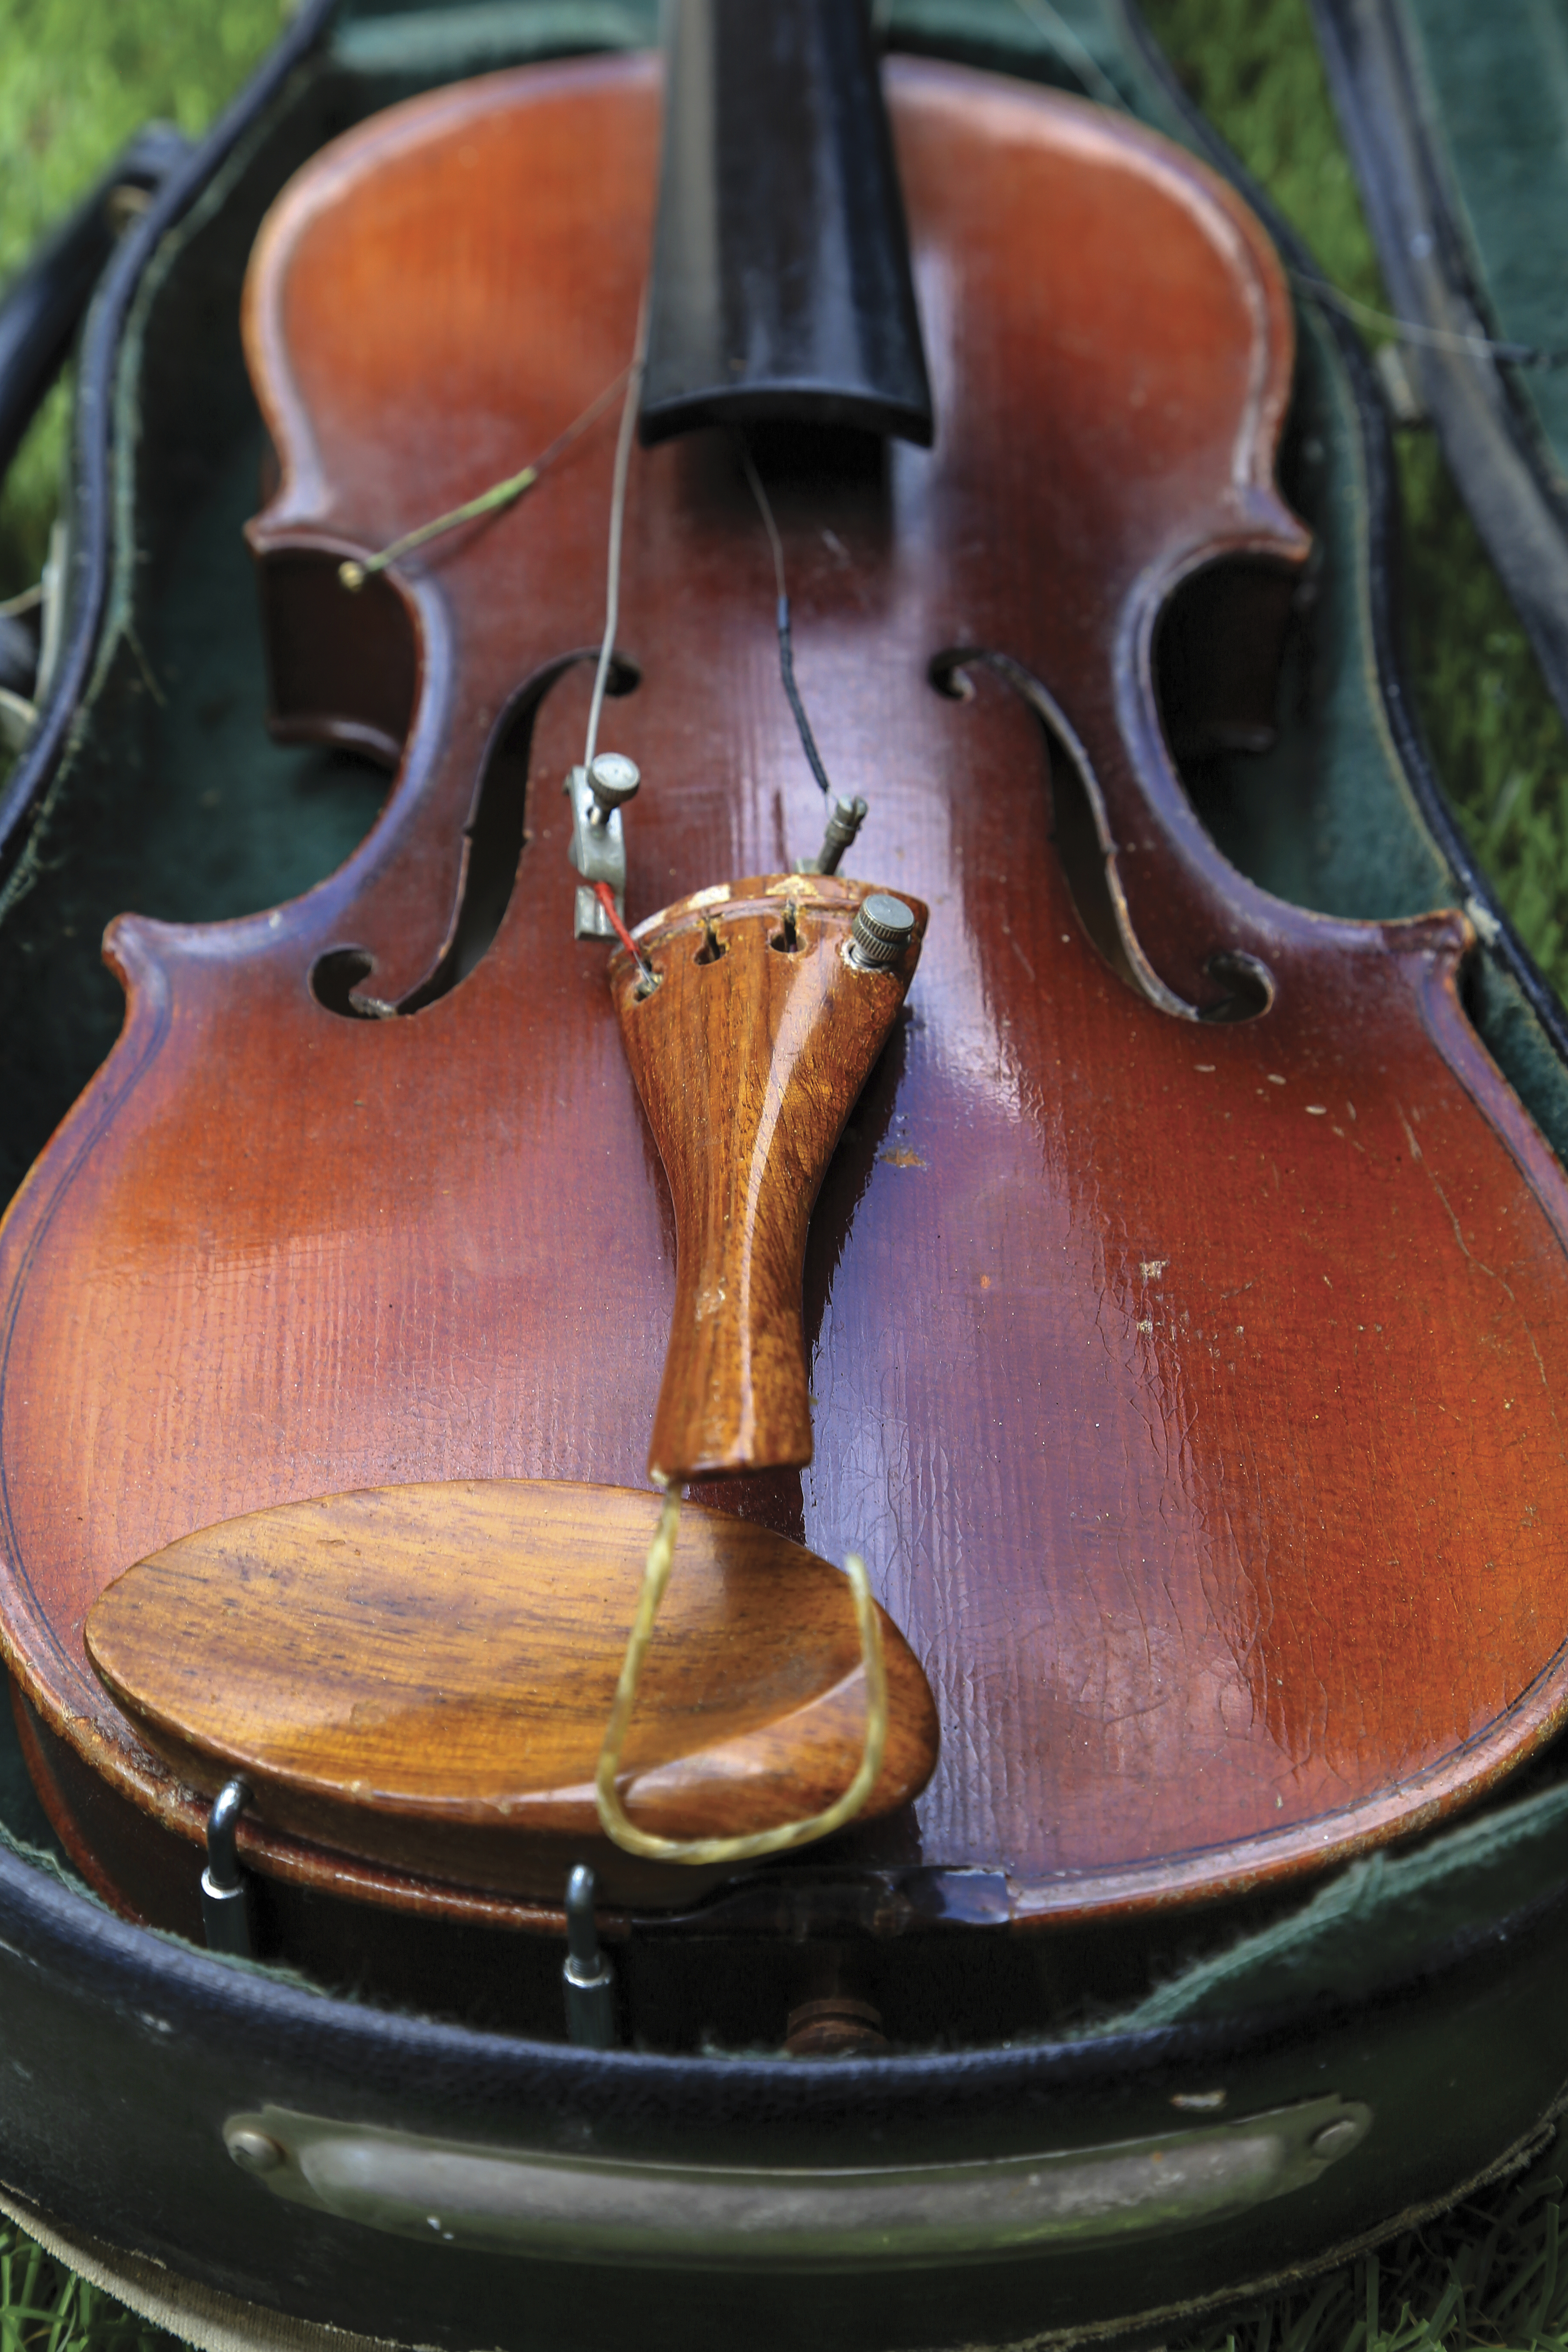 A violin with broken strings lying in a case.